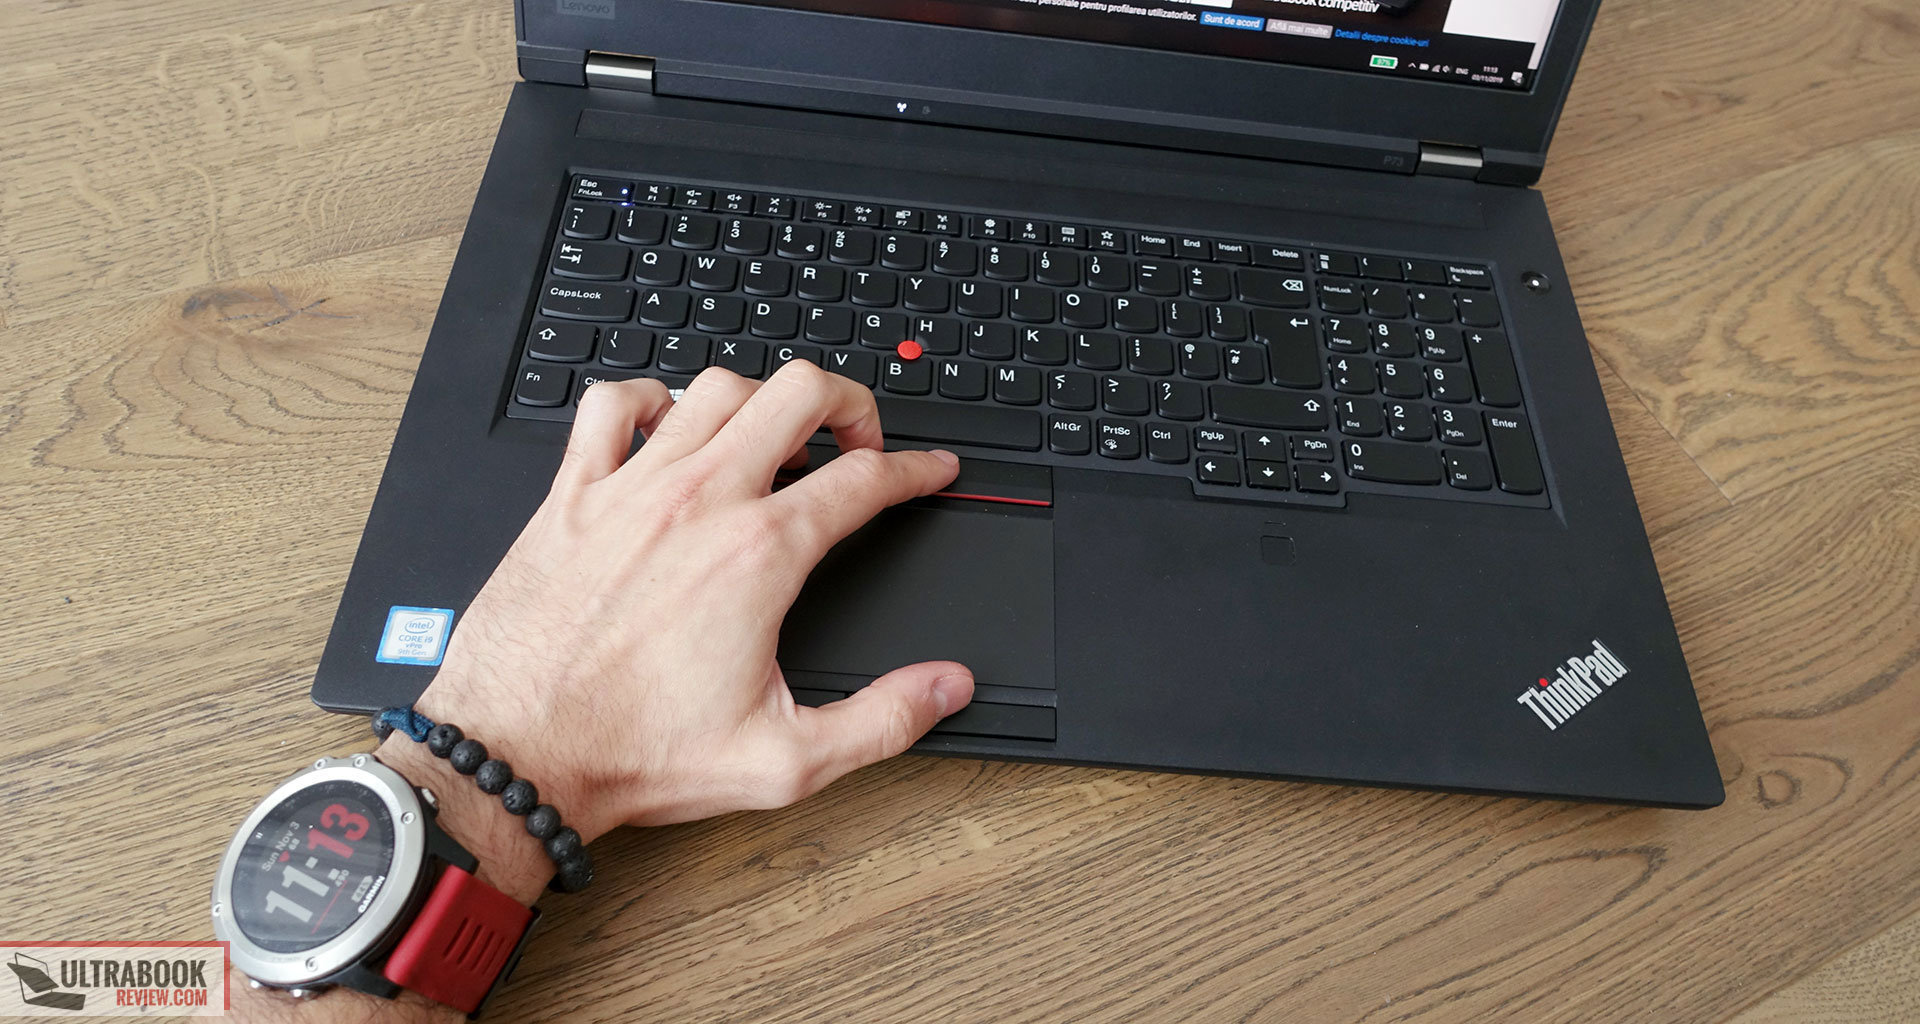 Lenovo ThinkPad P73 - keyboard and touchpad